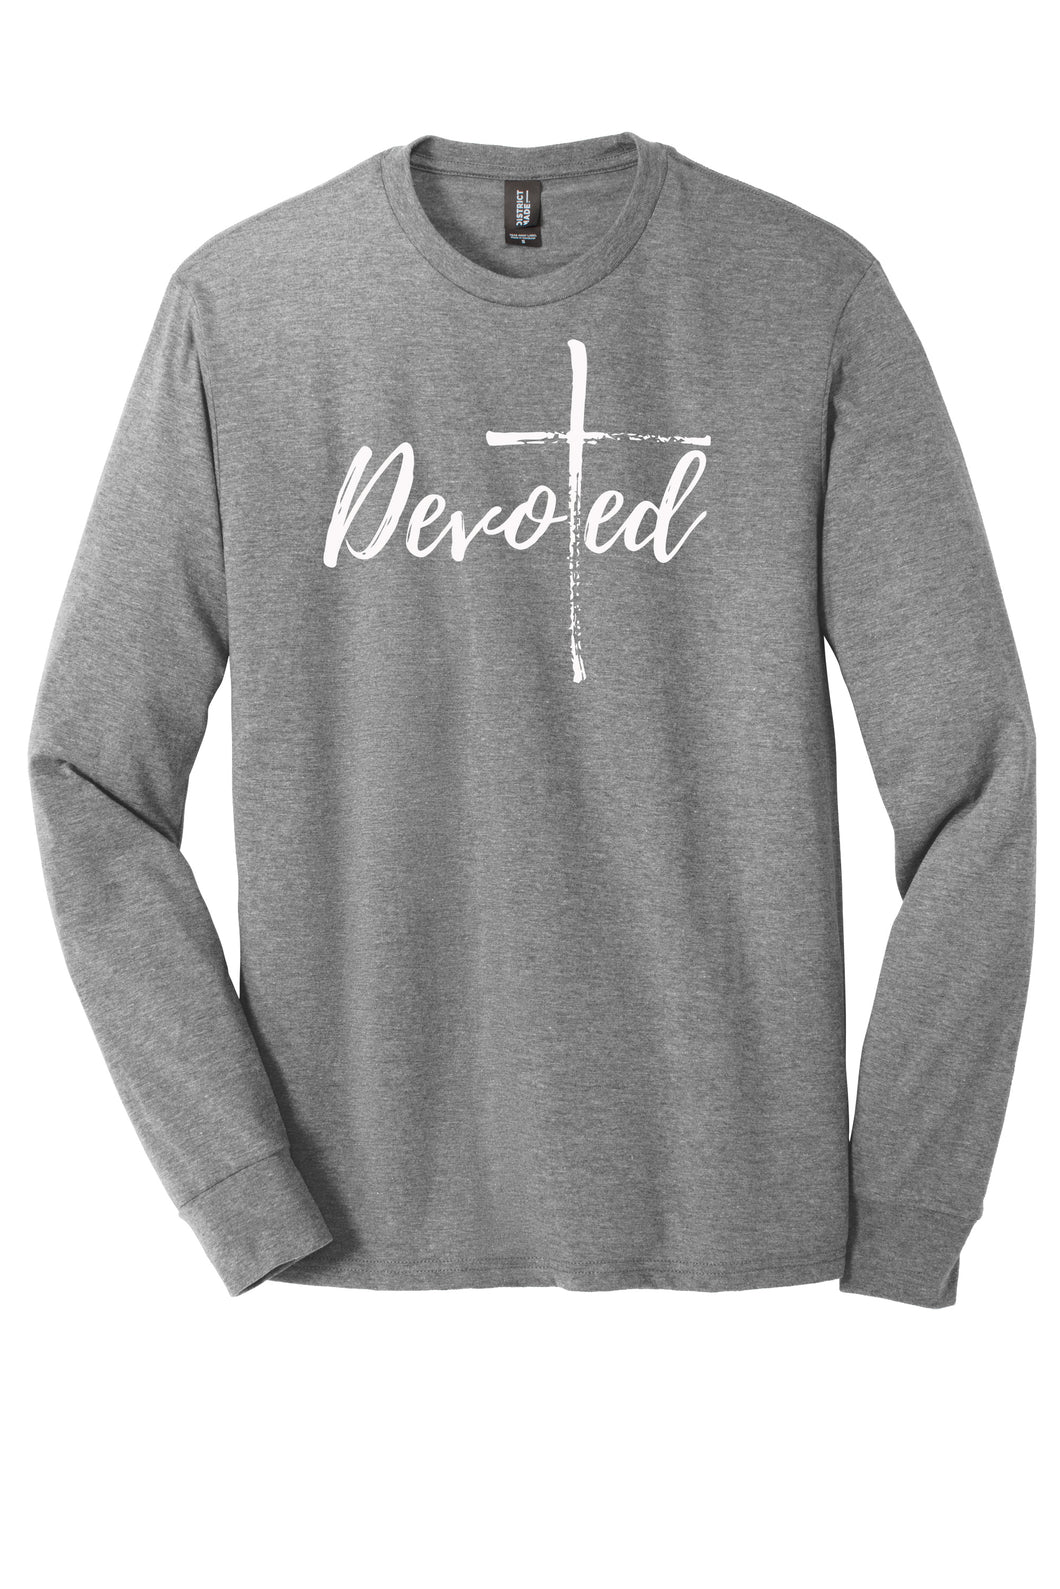 Devoted | The Power of One:  Tri-Blend Long Sleeve Tee